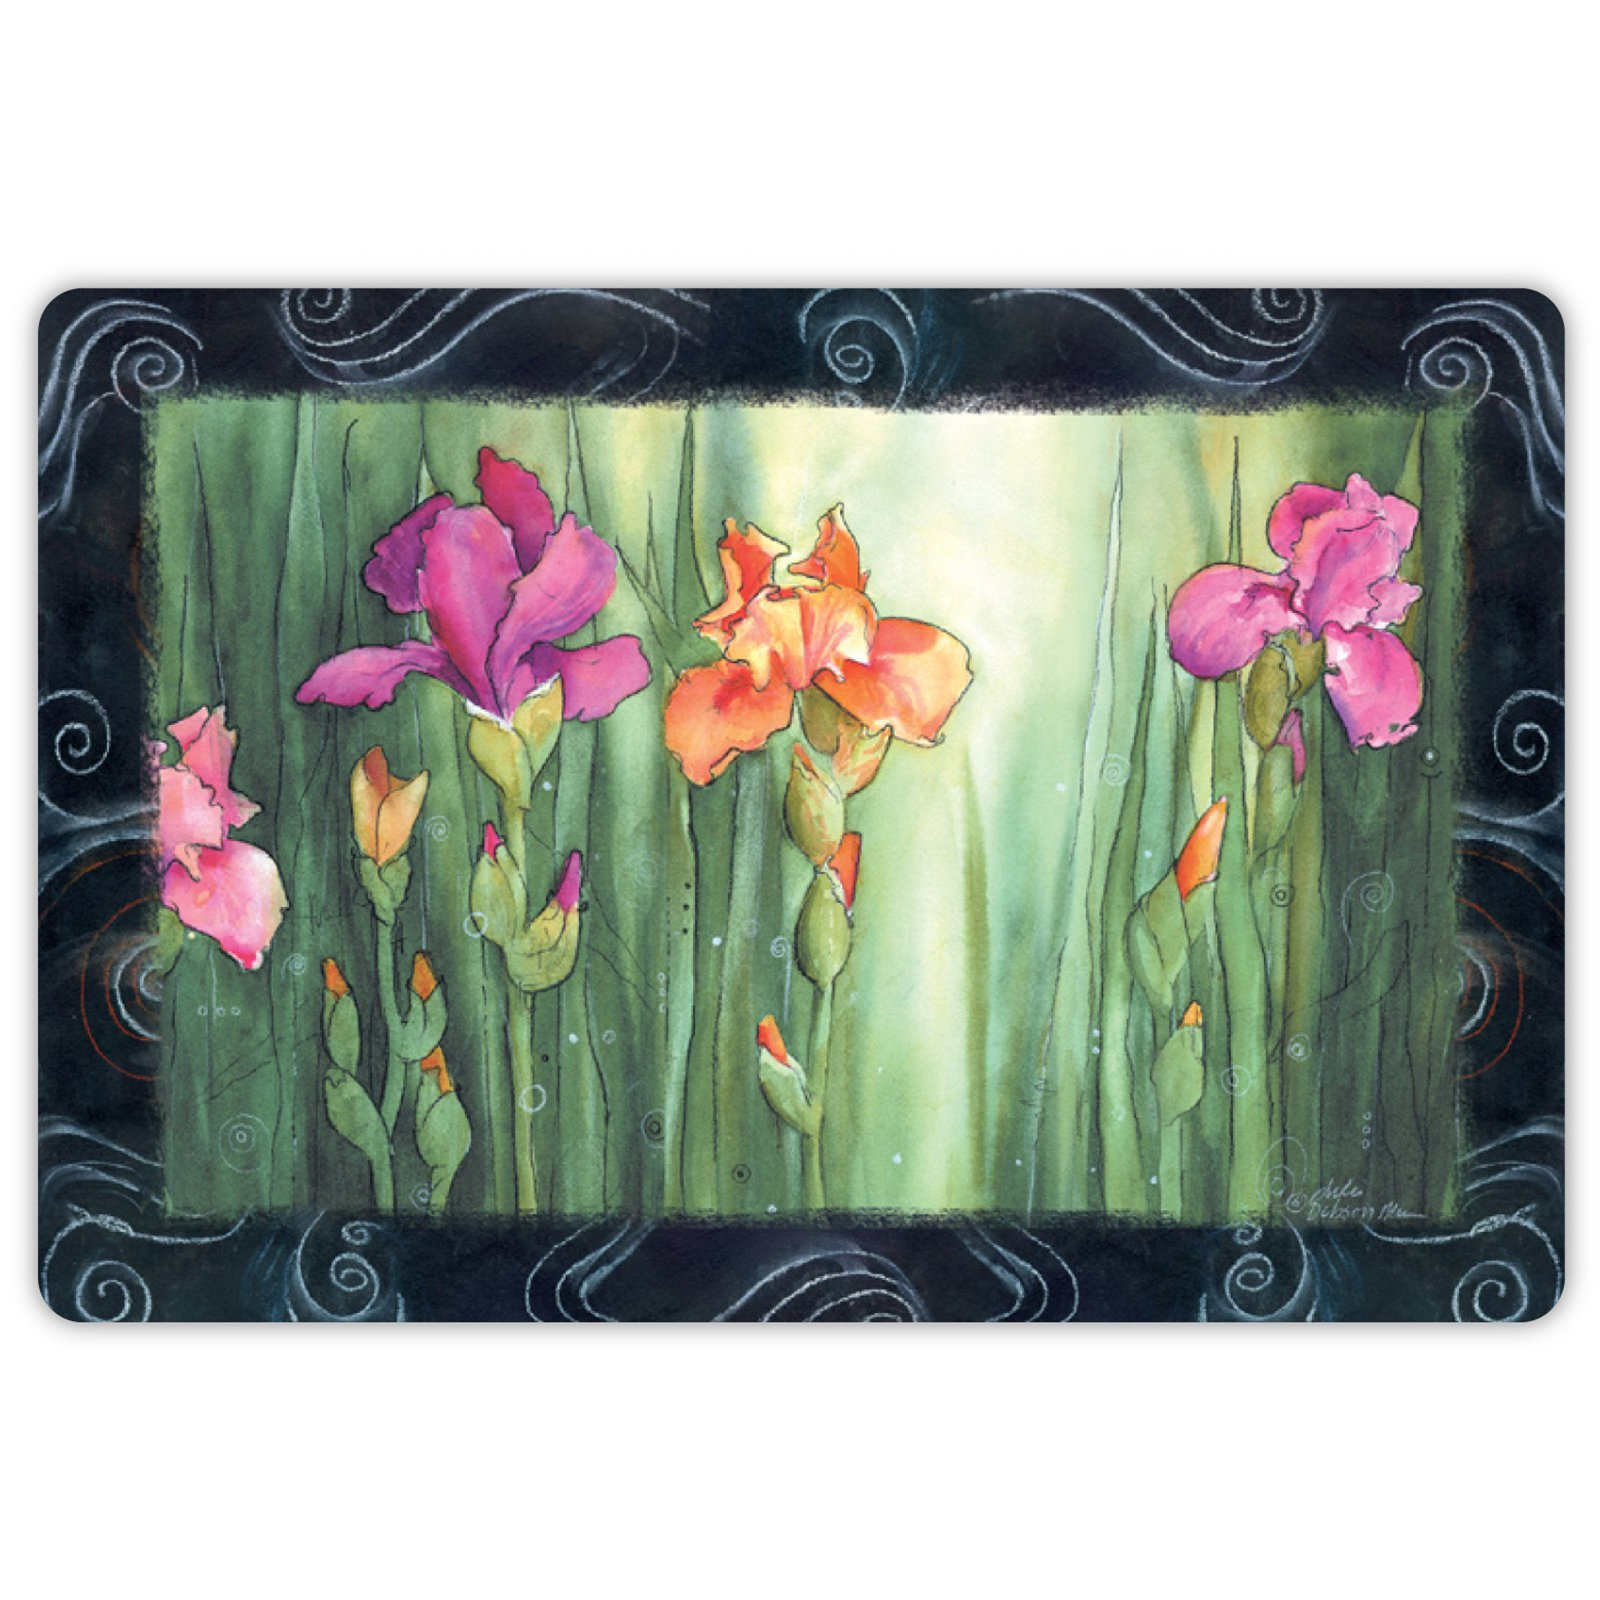 Drymate Spring/Summer Collection Welcome Mat - Irises